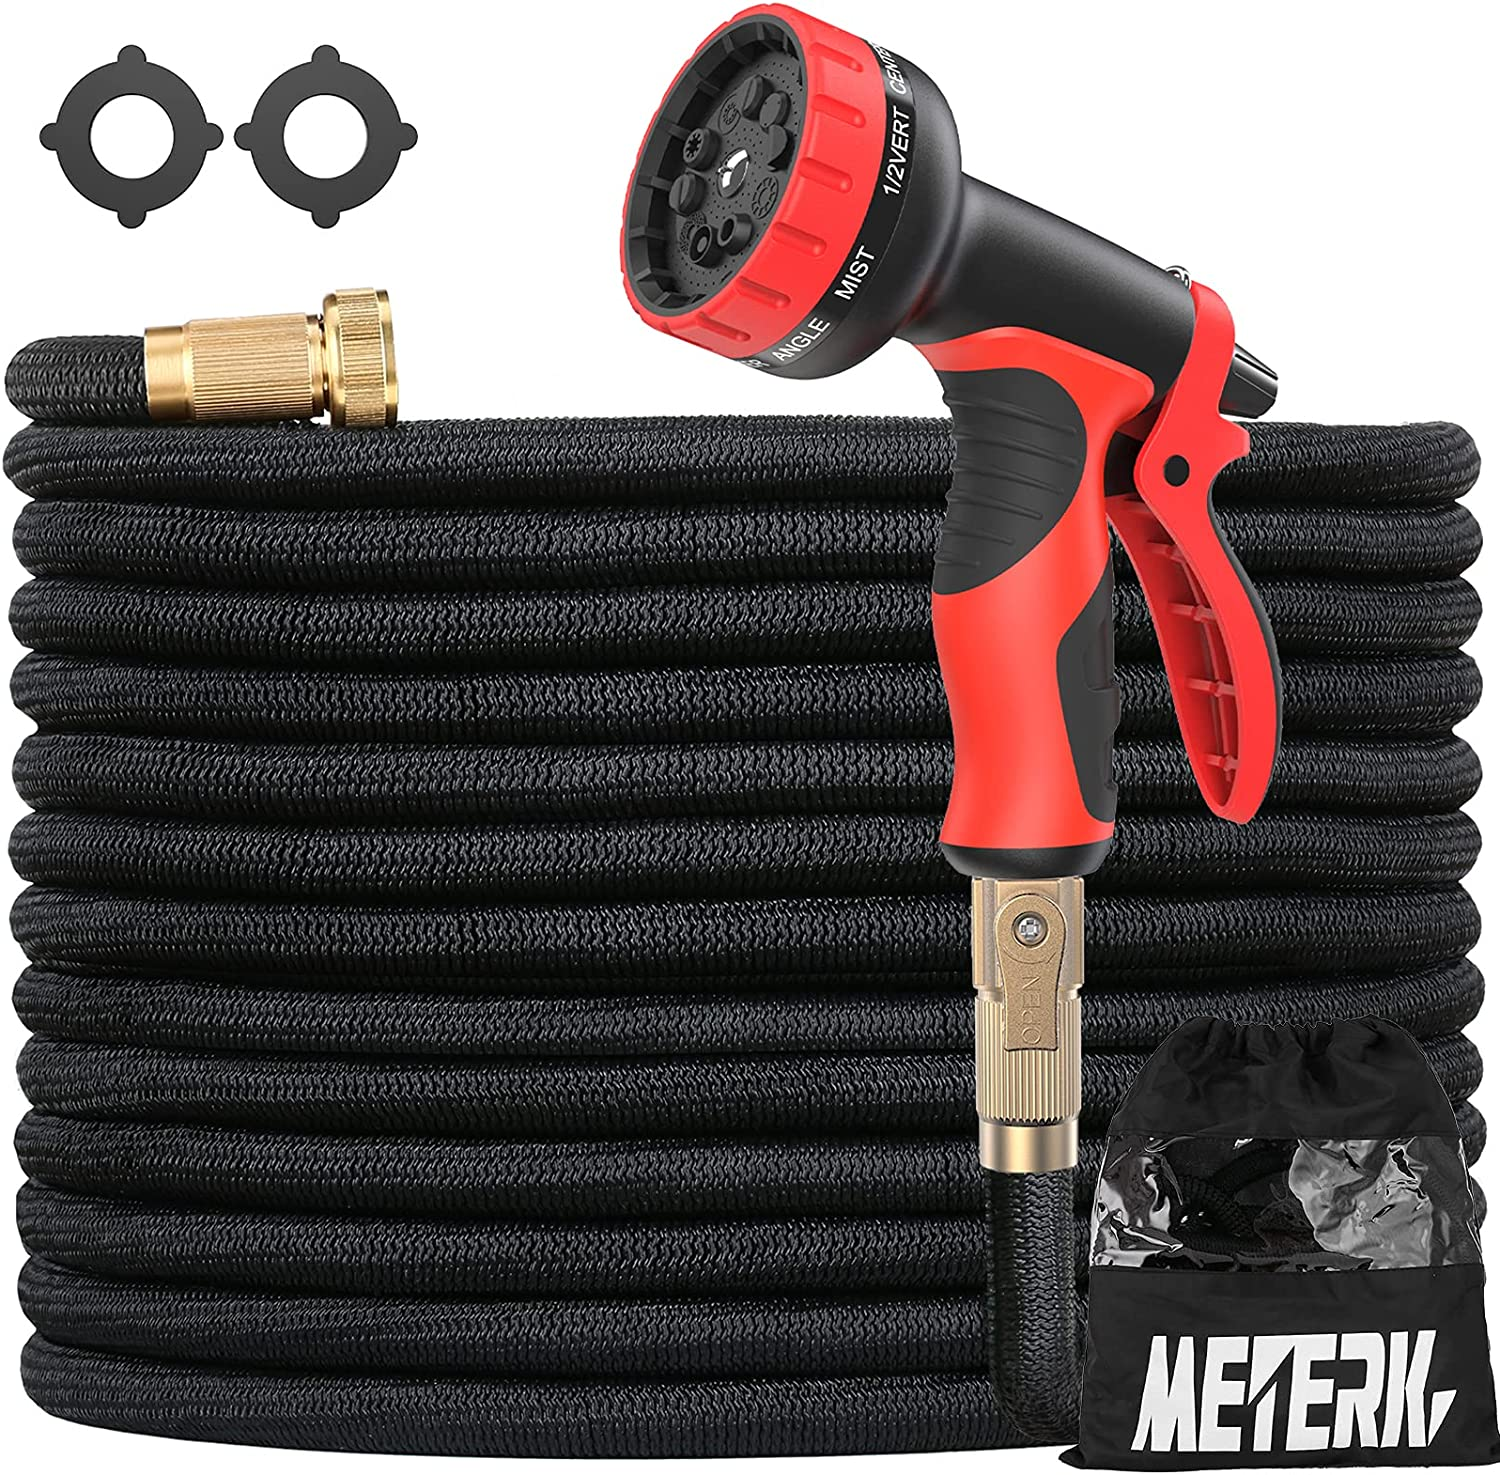 Expandable Garden Hose 50FT, Meterk Durable Flexible Water Hose with 10 Function Nozzle 3-Layers Latex Strength Fabric 3/4 Inch Solid Brass Fittings No-Kink Lightweight Perfect for Watering & Washing